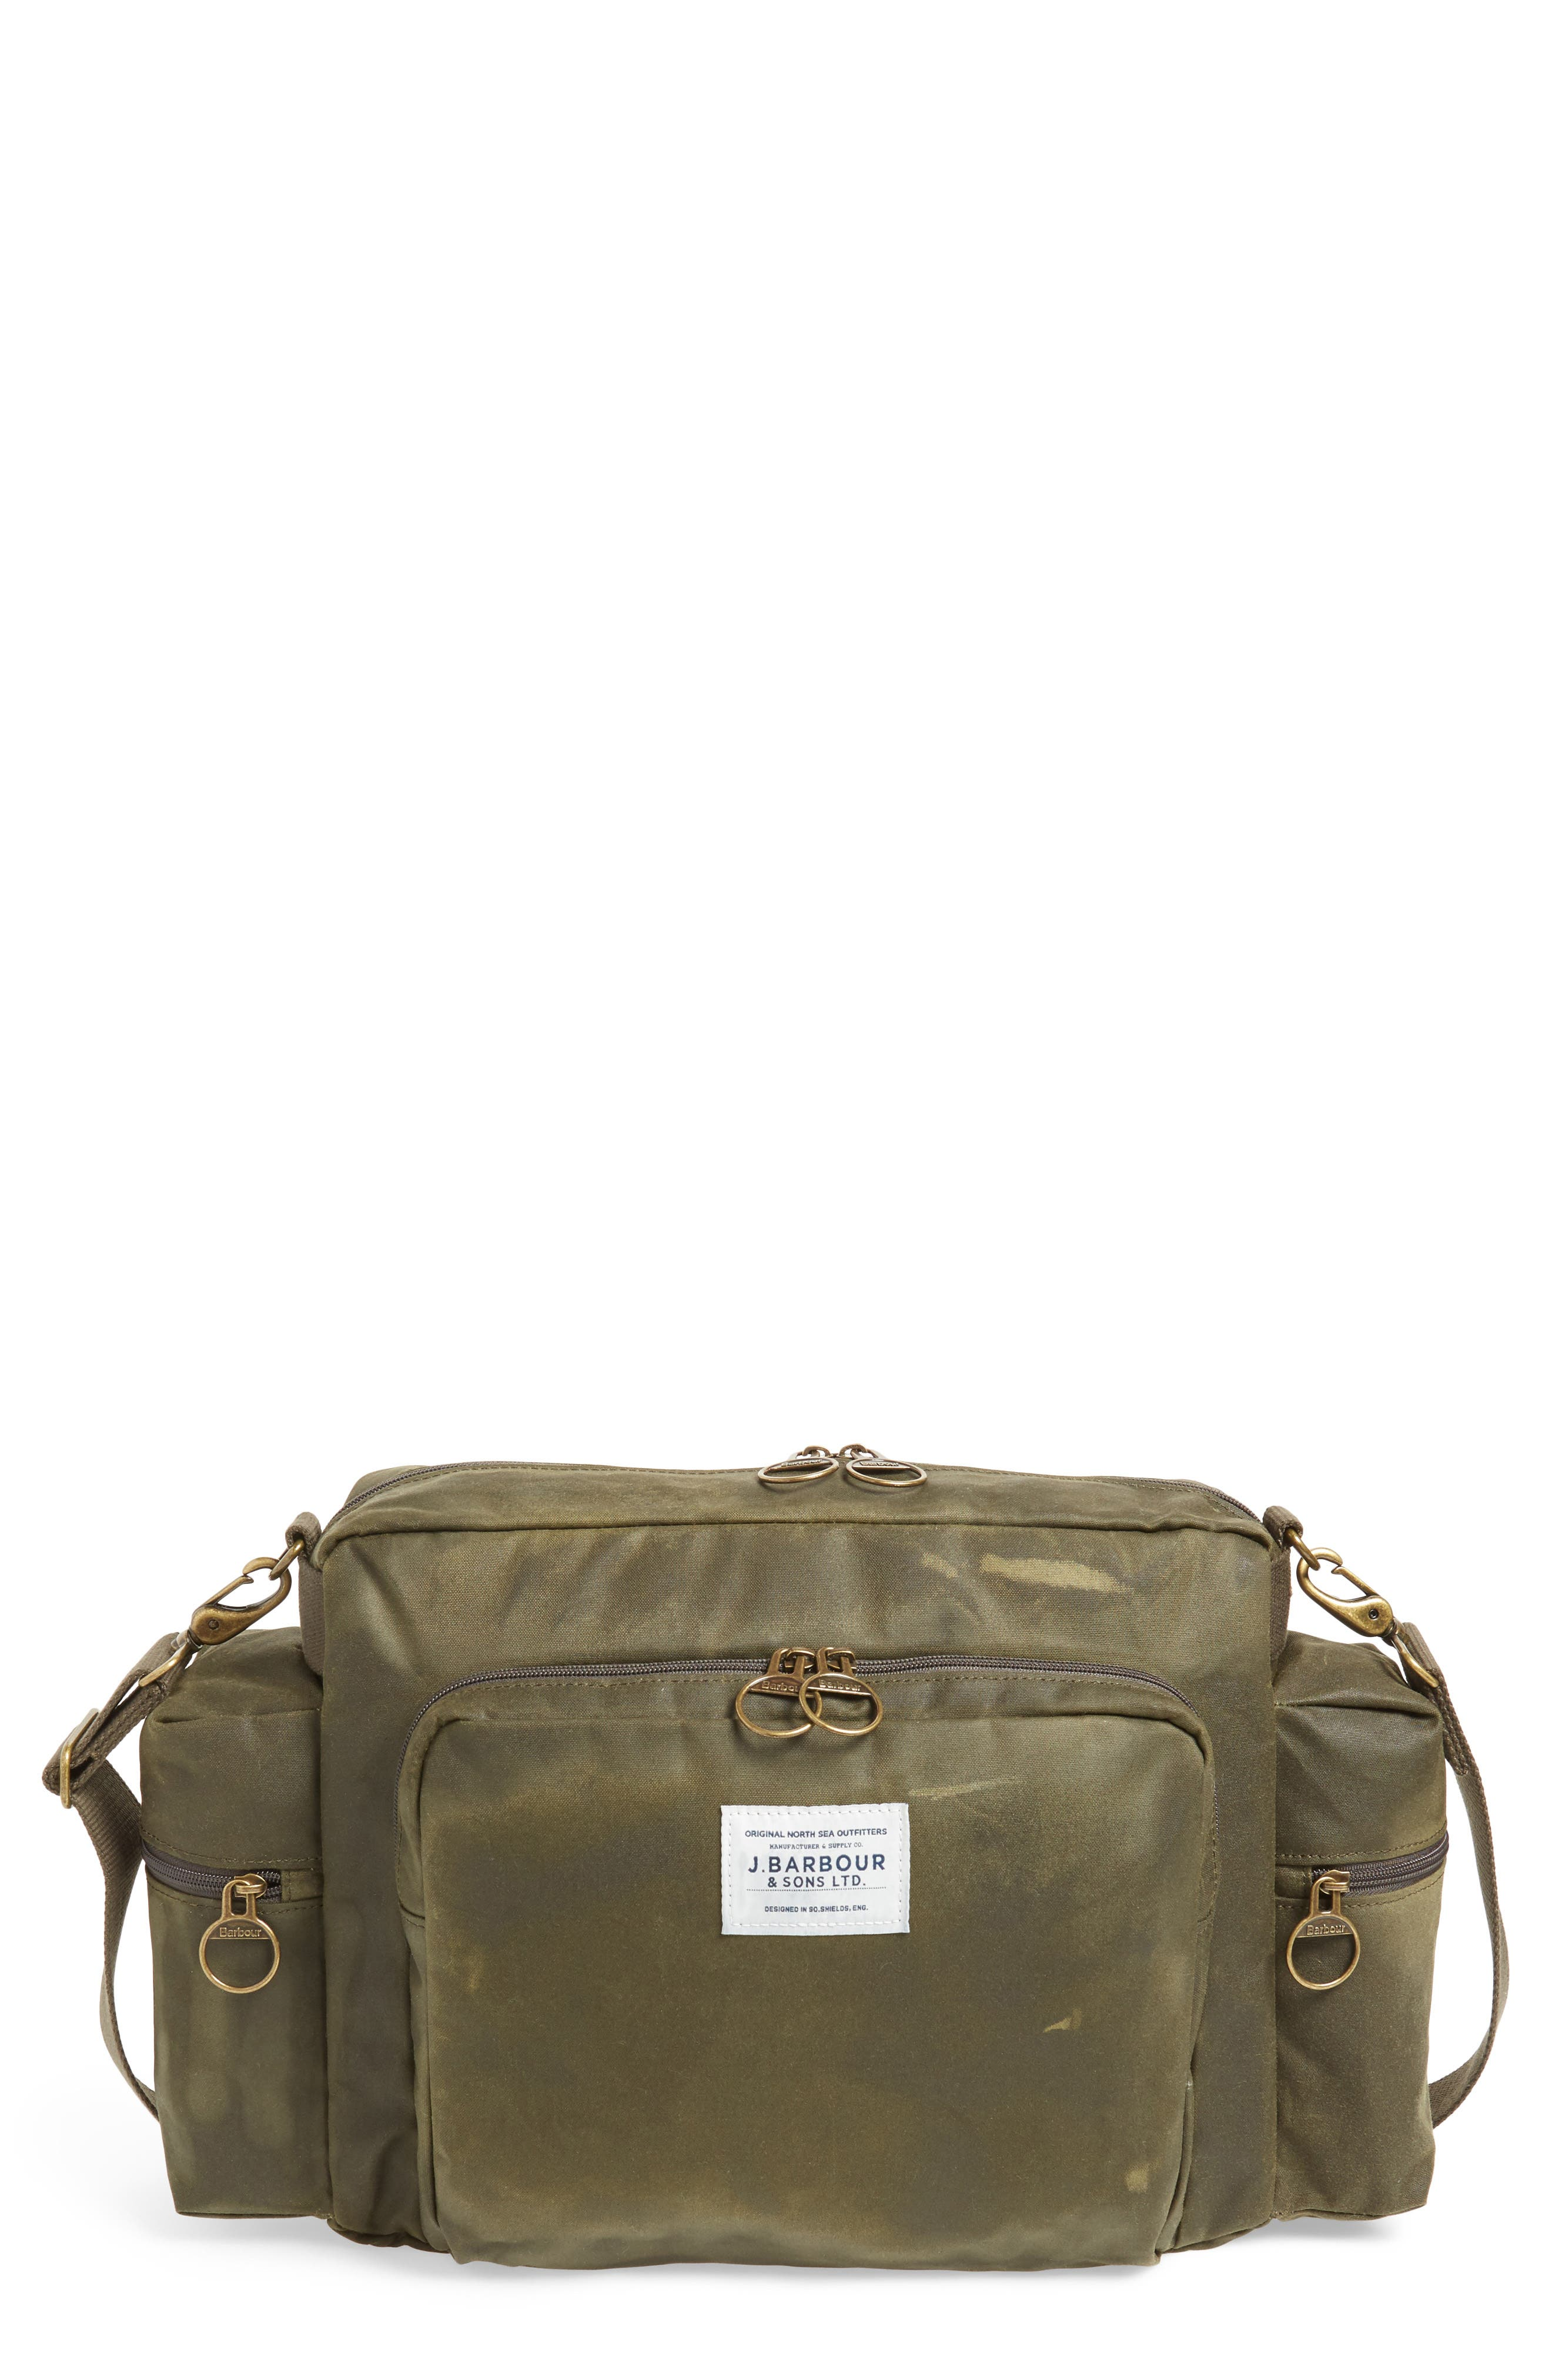 Archive Business Bag,                         Main,                         color, Archive Olive